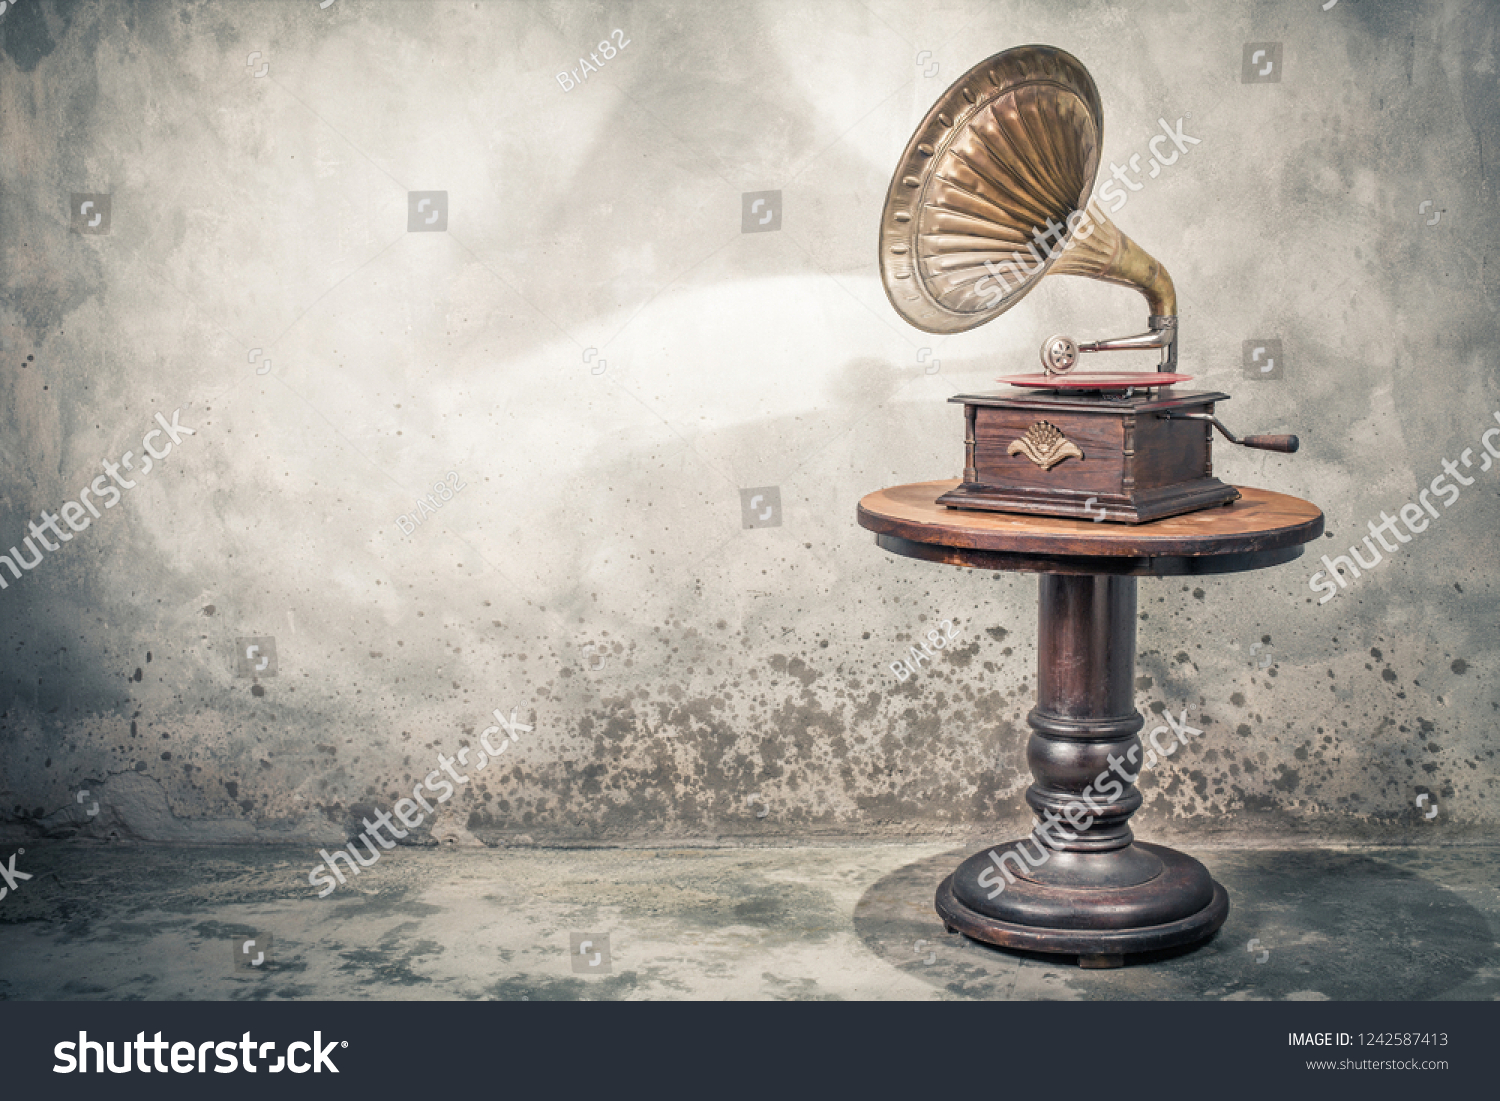 Vintage antique gramophone phonograph turntable with brass horn and red color vinyl disc record on wooden table front concrete wall background with shadow. Retro old style filtered photo #1242587413